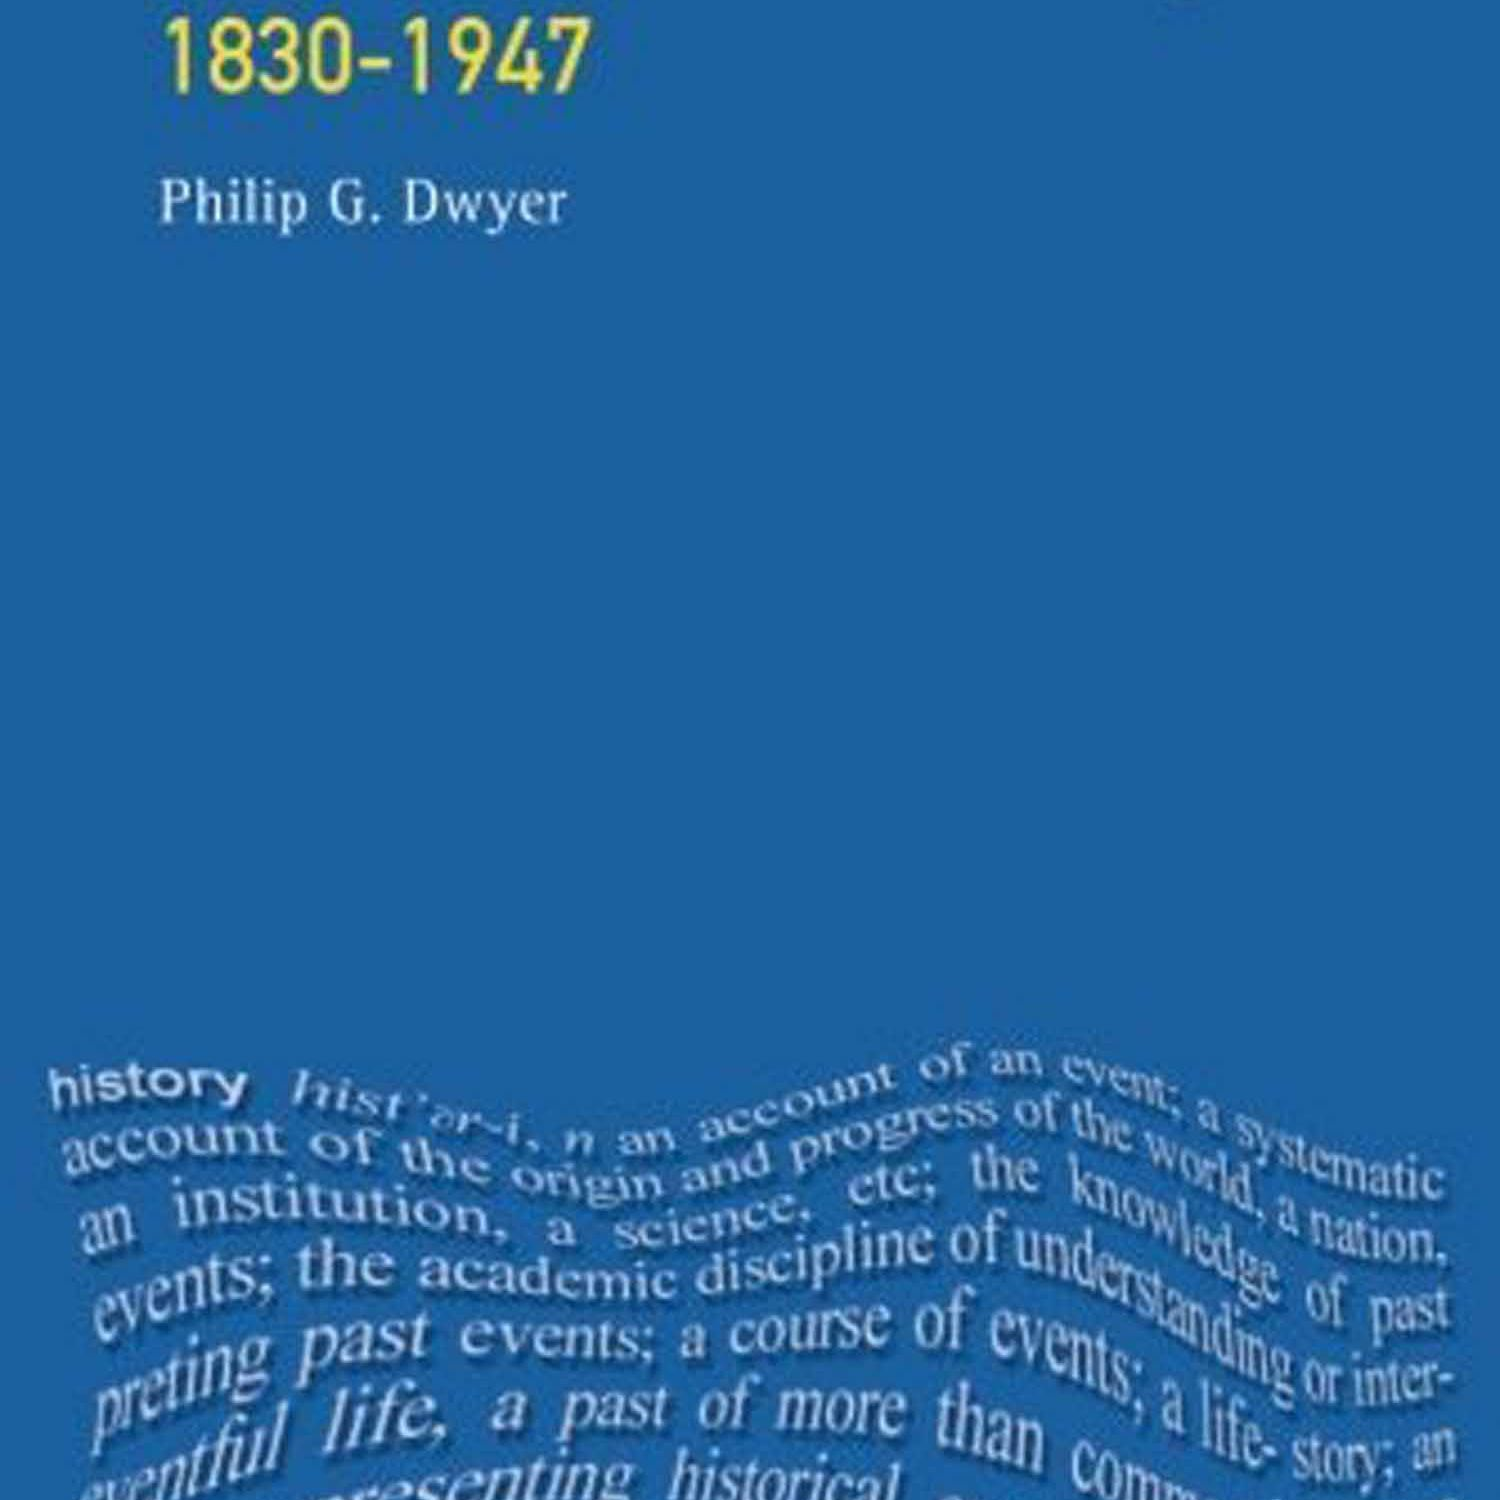 Modern Prussian History 1830 - 1947 by Philip G. Dwyer